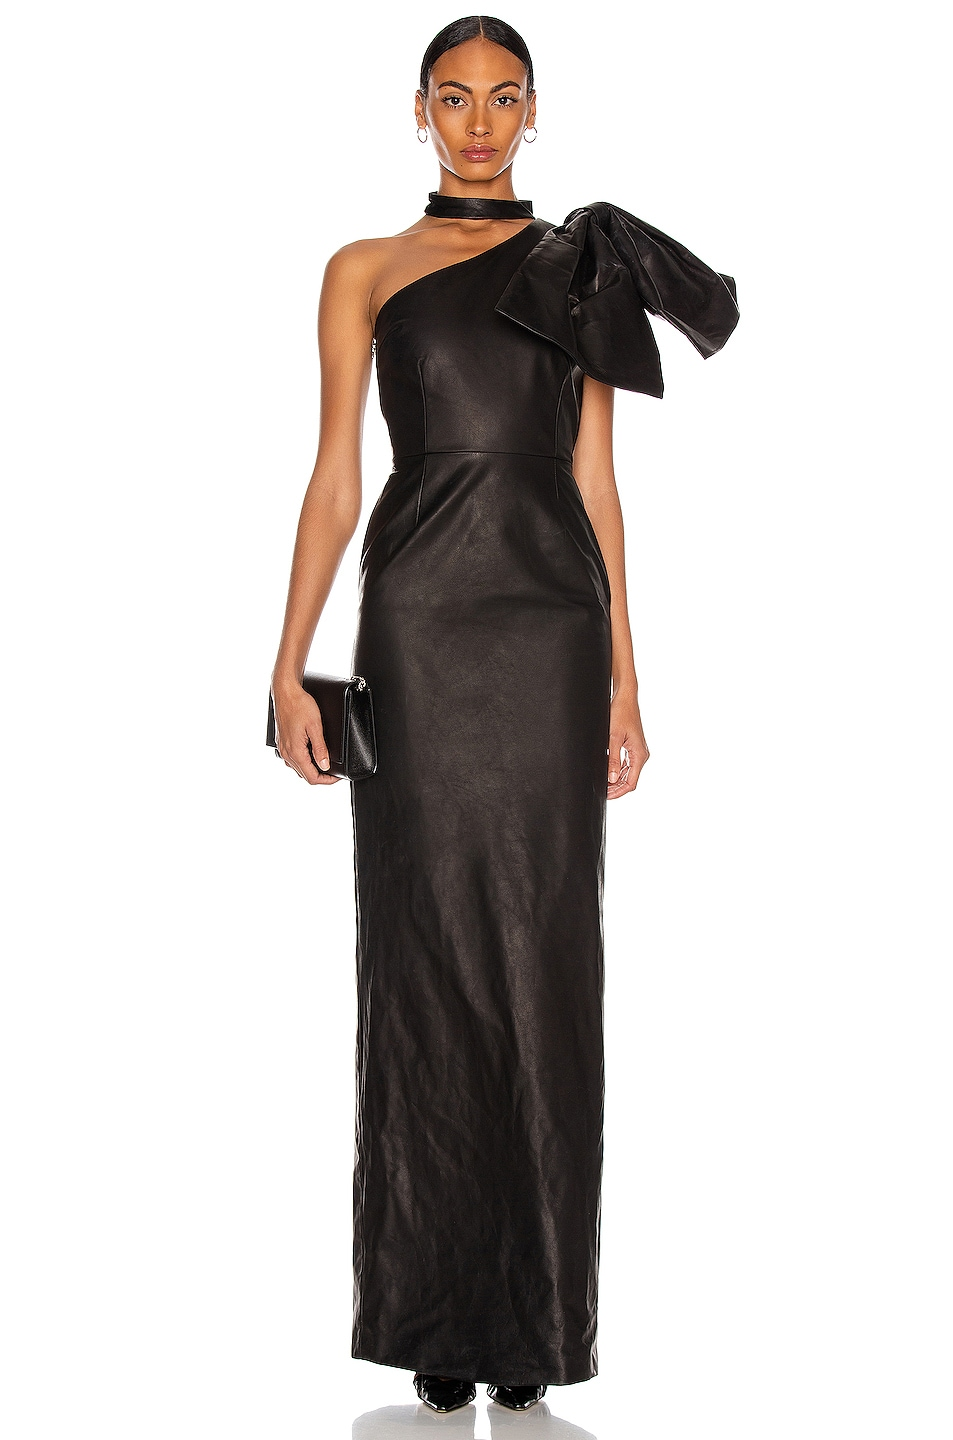 Image 1 of CHRISTIAN COWAN Leather One Shoulder Leather Dress in Black 1